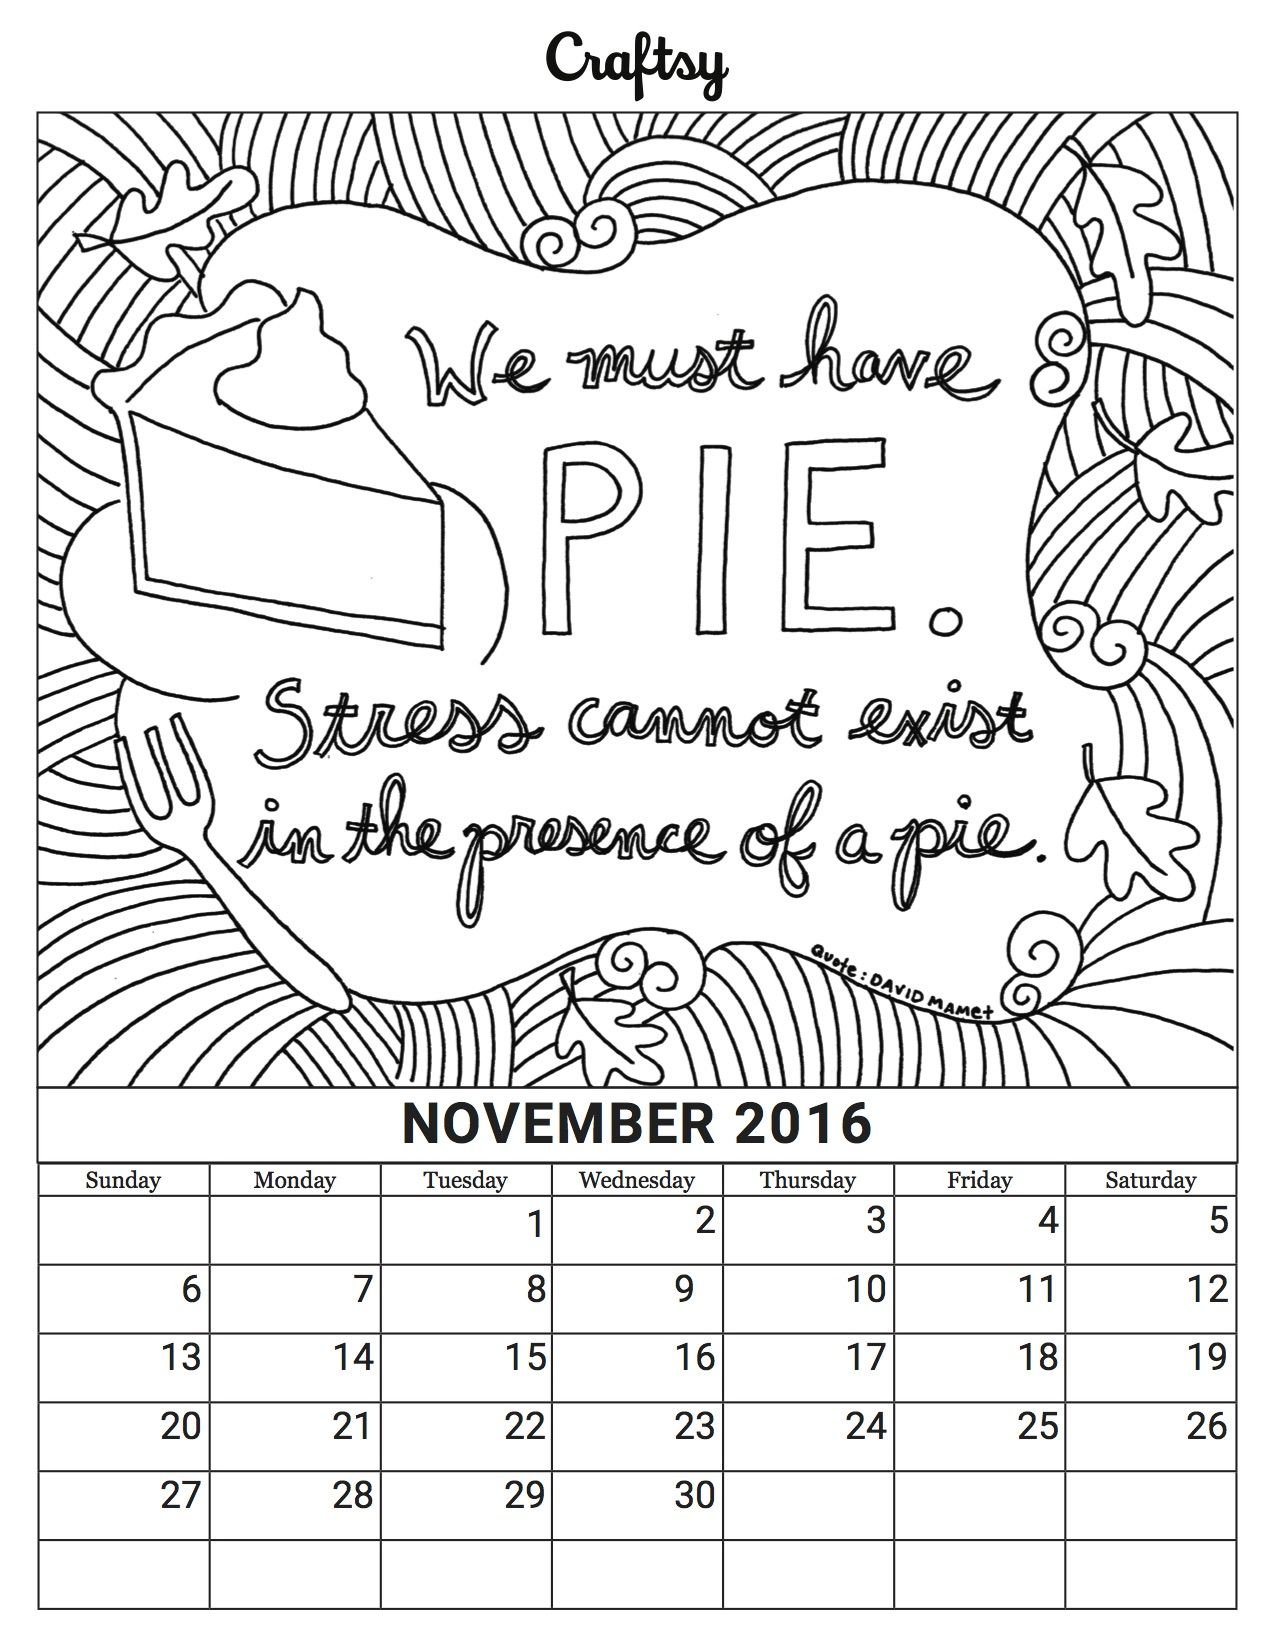 November Coloring Book Calendar Page Coloring Calendar Coloring Book Pages Free Coloring Pages